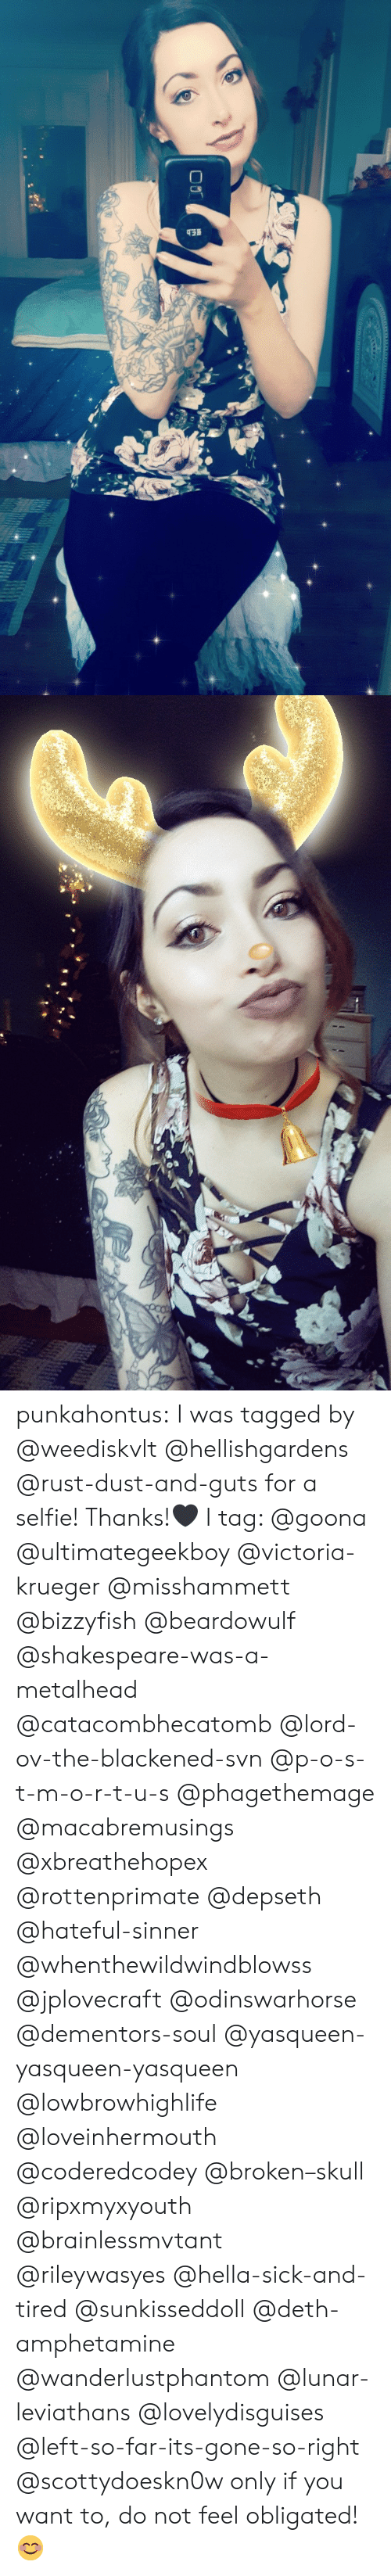 metalhead: punkahontus:  I was tagged by @weediskvlt @hellishgardens @rust-dust-and-guts for a selfie! Thanks!🖤  I tag: @goona @ultimategeekboy @victoria-krueger @misshammett @bizzyfish @beardowulf @shakespeare-was-a-metalhead @catacombhecatomb @lord-ov-the-blackened-svn @p-o-s-t-m-o-r-t-u-s @phagethemage @macabremusings @xbreathehopex @rottenprimate @depseth @hateful-sinner @whenthewildwindblowss @jplovecraft @odinswarhorse @dementors-soul @yasqueen-yasqueen-yasqueen @lowbrowhighlife @loveinhermouth @coderedcodey @broken–skull @ripxmyxyouth @brainlessmvtant @rileywasyes @hella-sick-and-tired @sunkisseddoll @deth-amphetamine @wanderlustphantom @lunar-leviathans @lovelydisguises @left-so-far-its-gone-so-right @scottydoeskn0w only if you want to, do not feel obligated! 😊